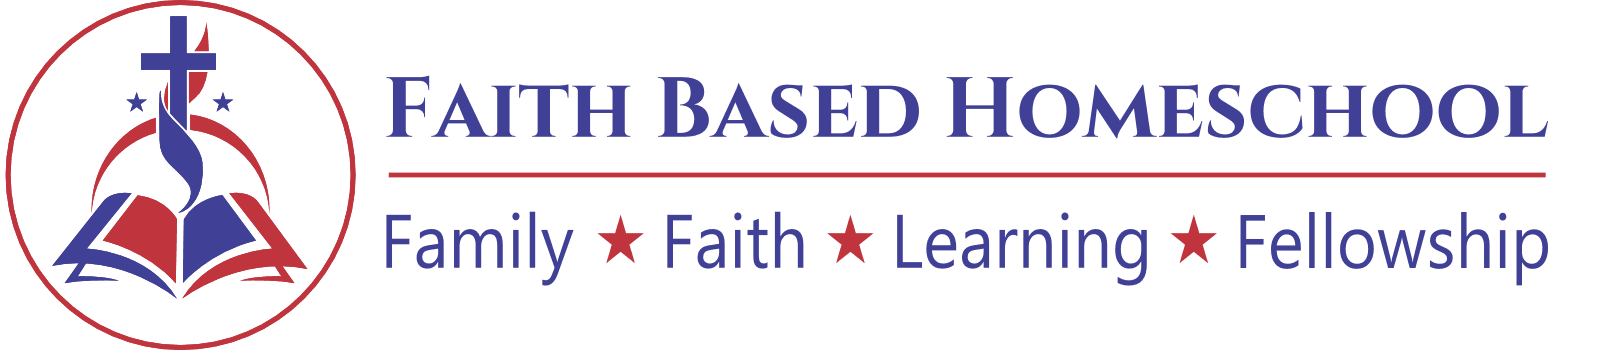 Faith Based Homeschool